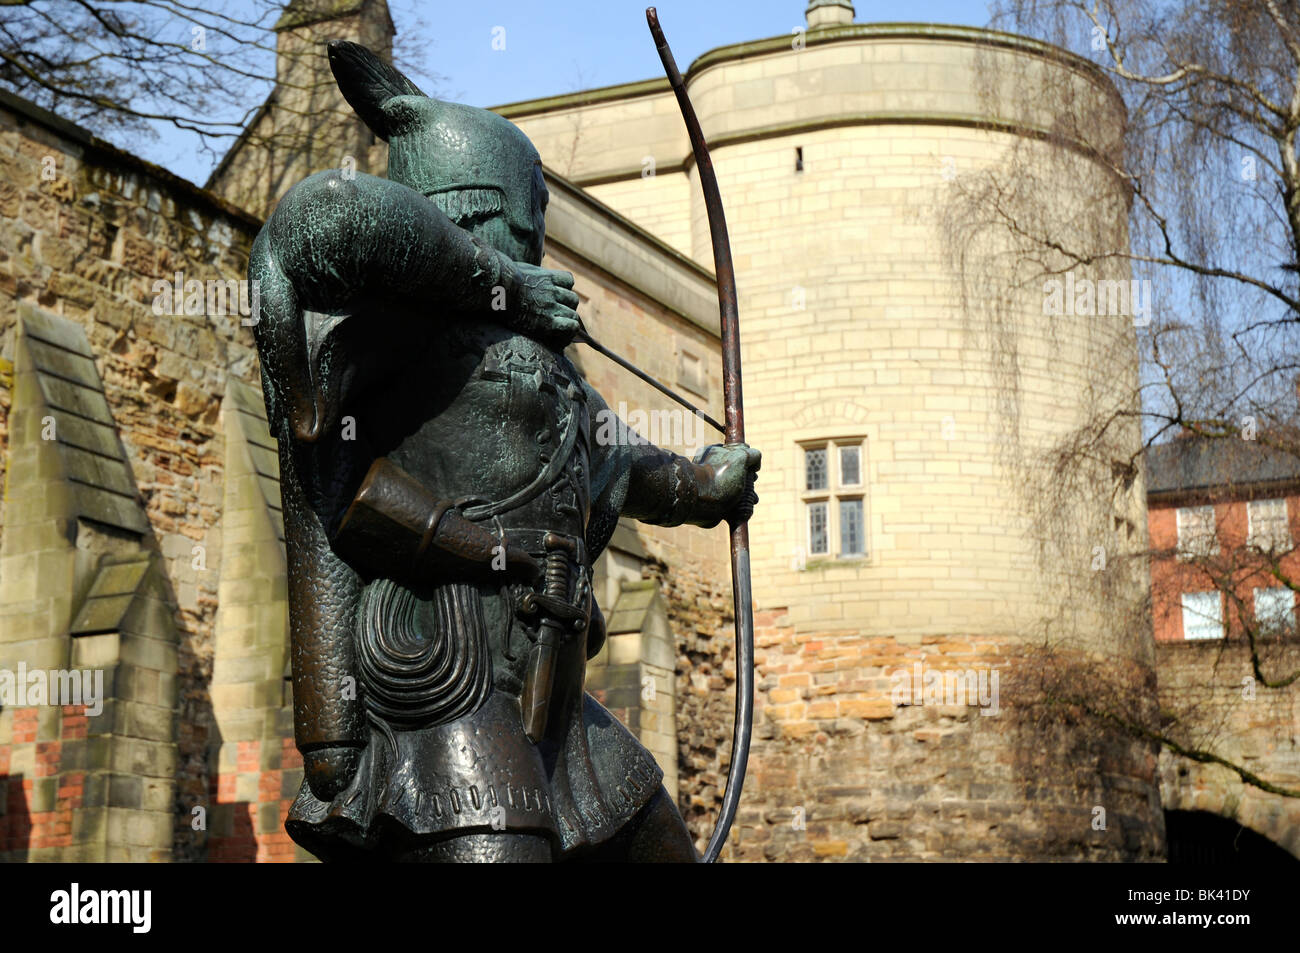 Robin Hood statue outside Nottingham Castle, Nottingham, England, UK